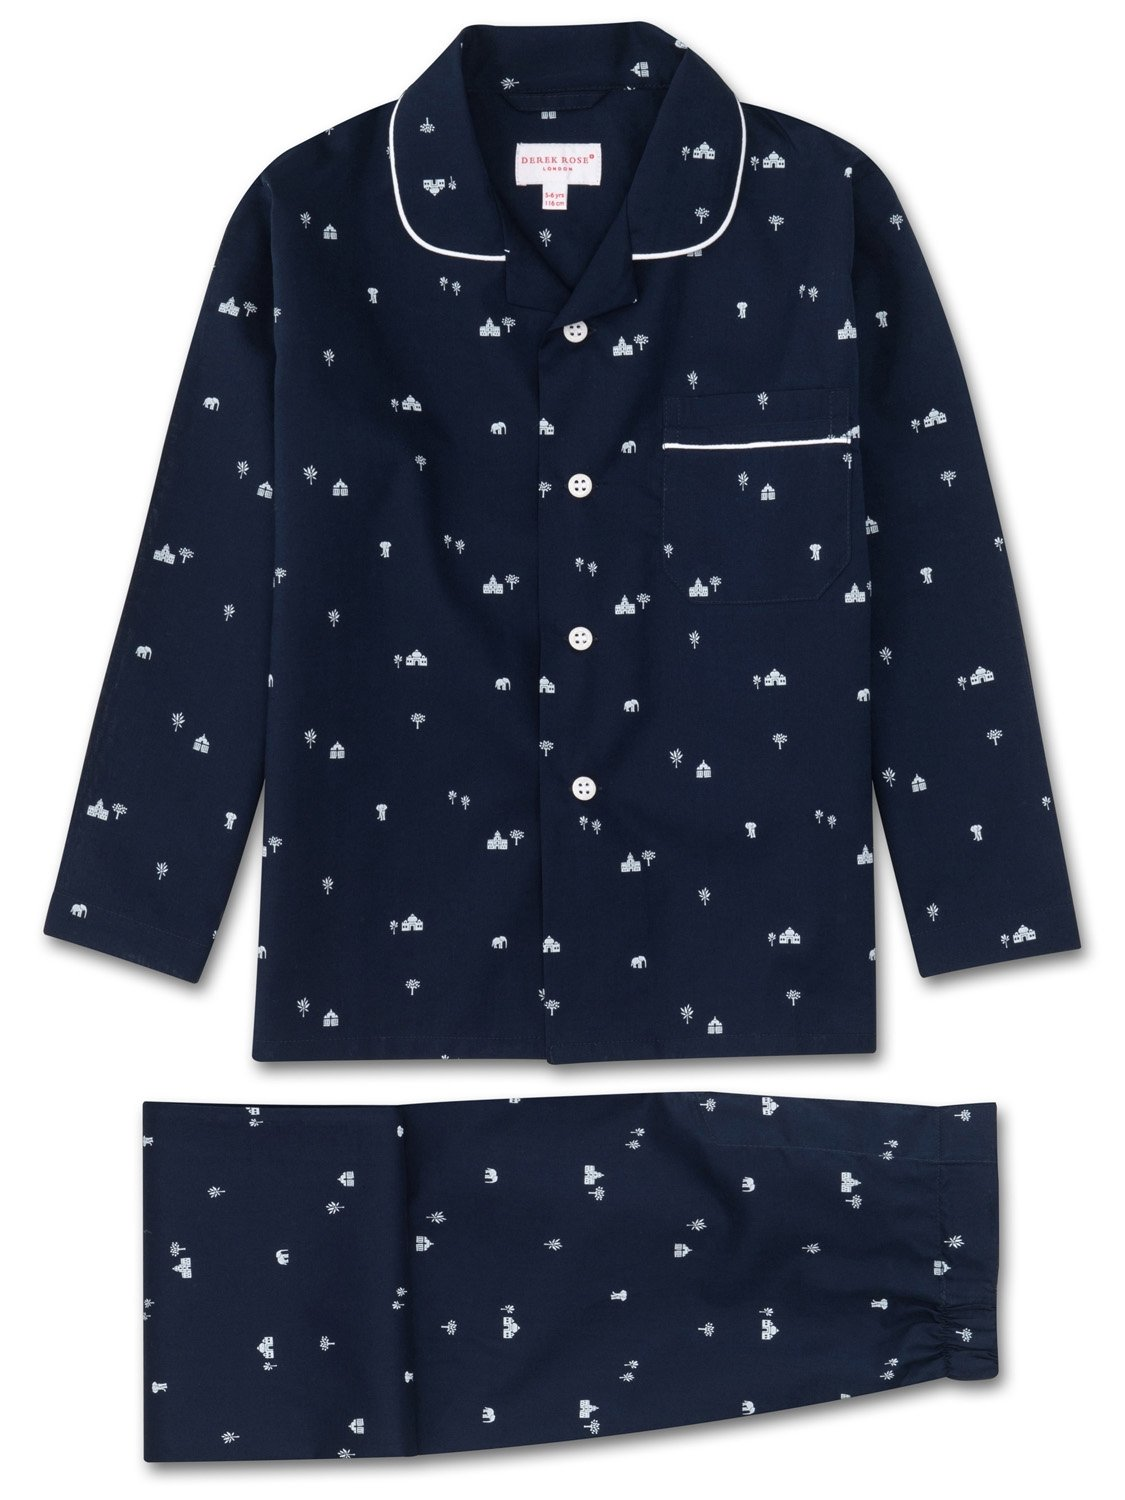 Boys' Pyjamas Nelson 62 Cotton Batiste Navy